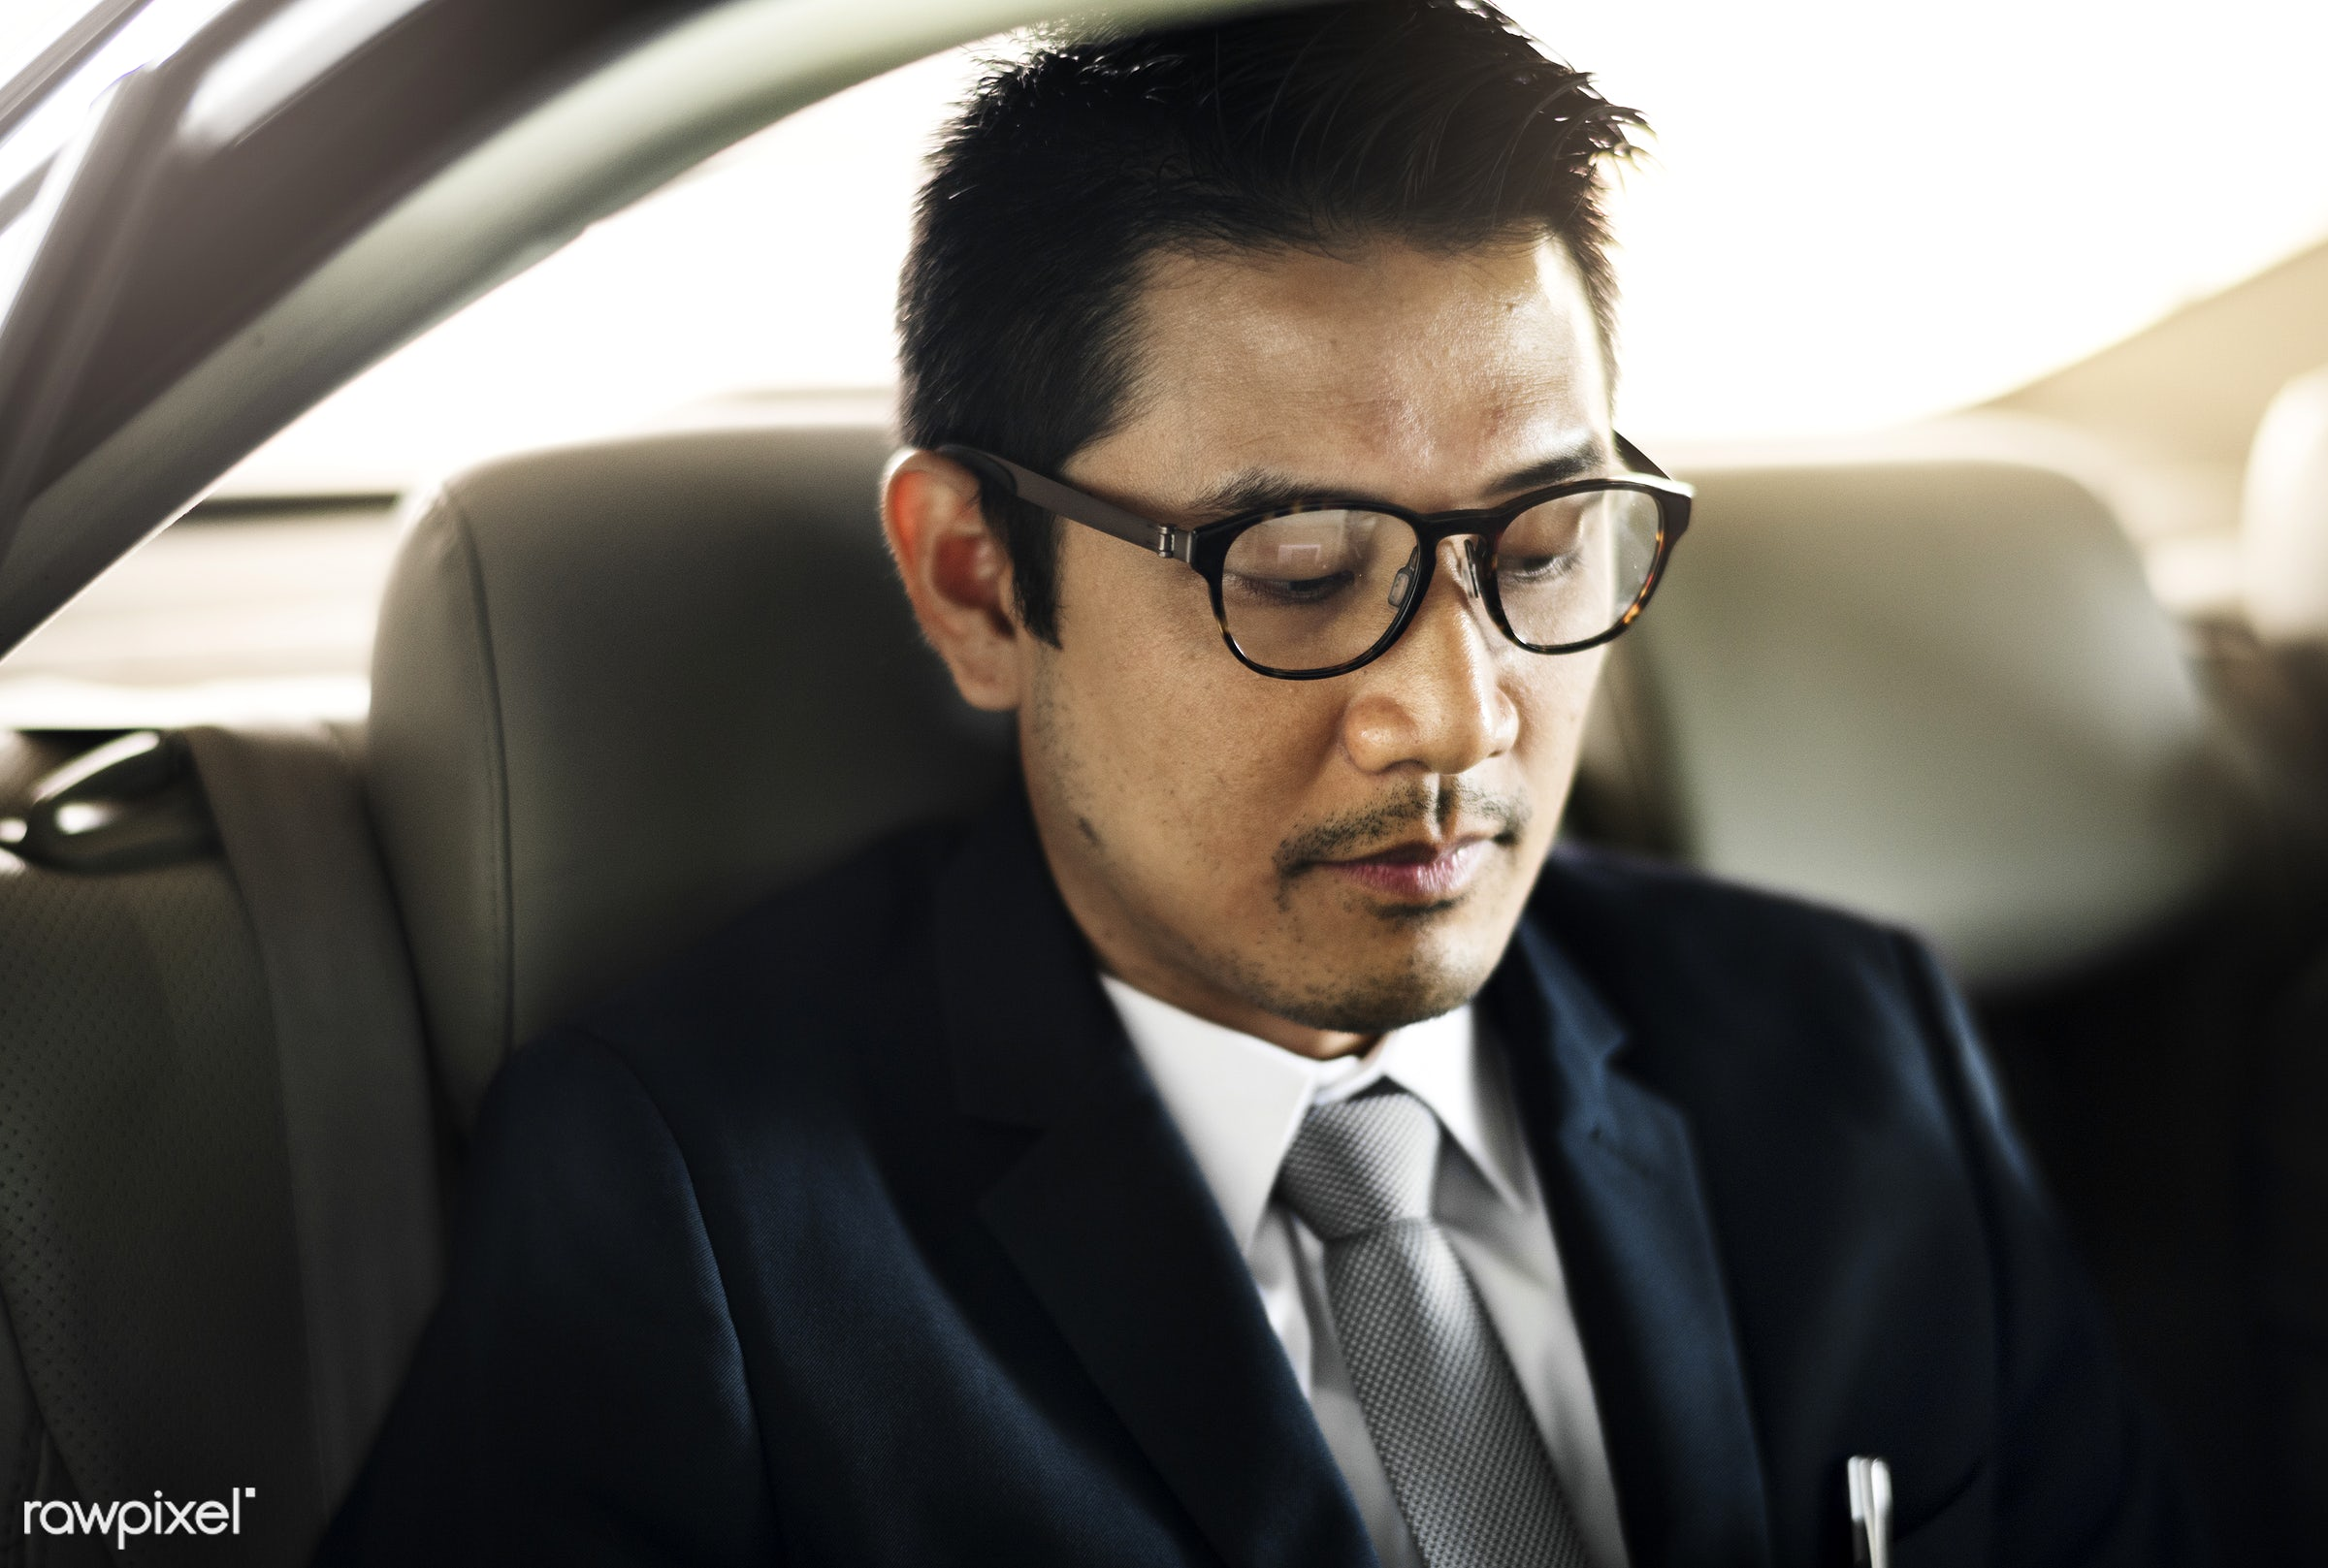 adult, back seat, business, businessman, businessmen, candid, car, corporate, employee, ethnicity, expression, face, formal...